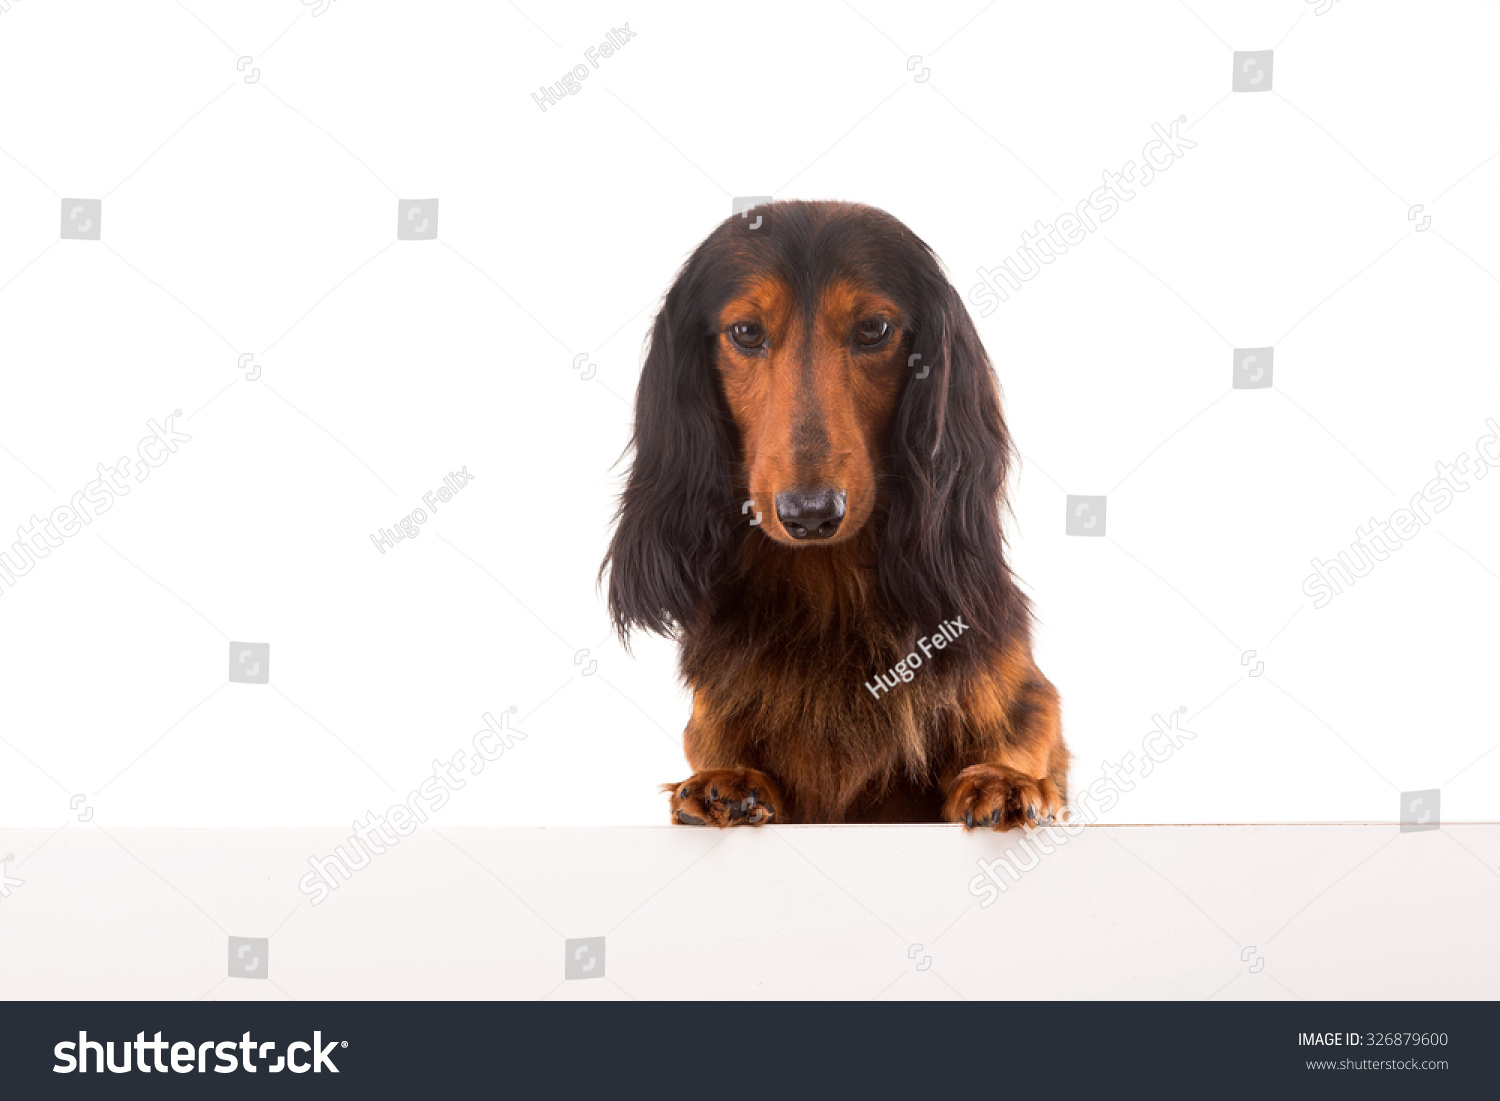 Funny Teckel Dachshund Puppy Over White Stock Photo Edit Now 326879600